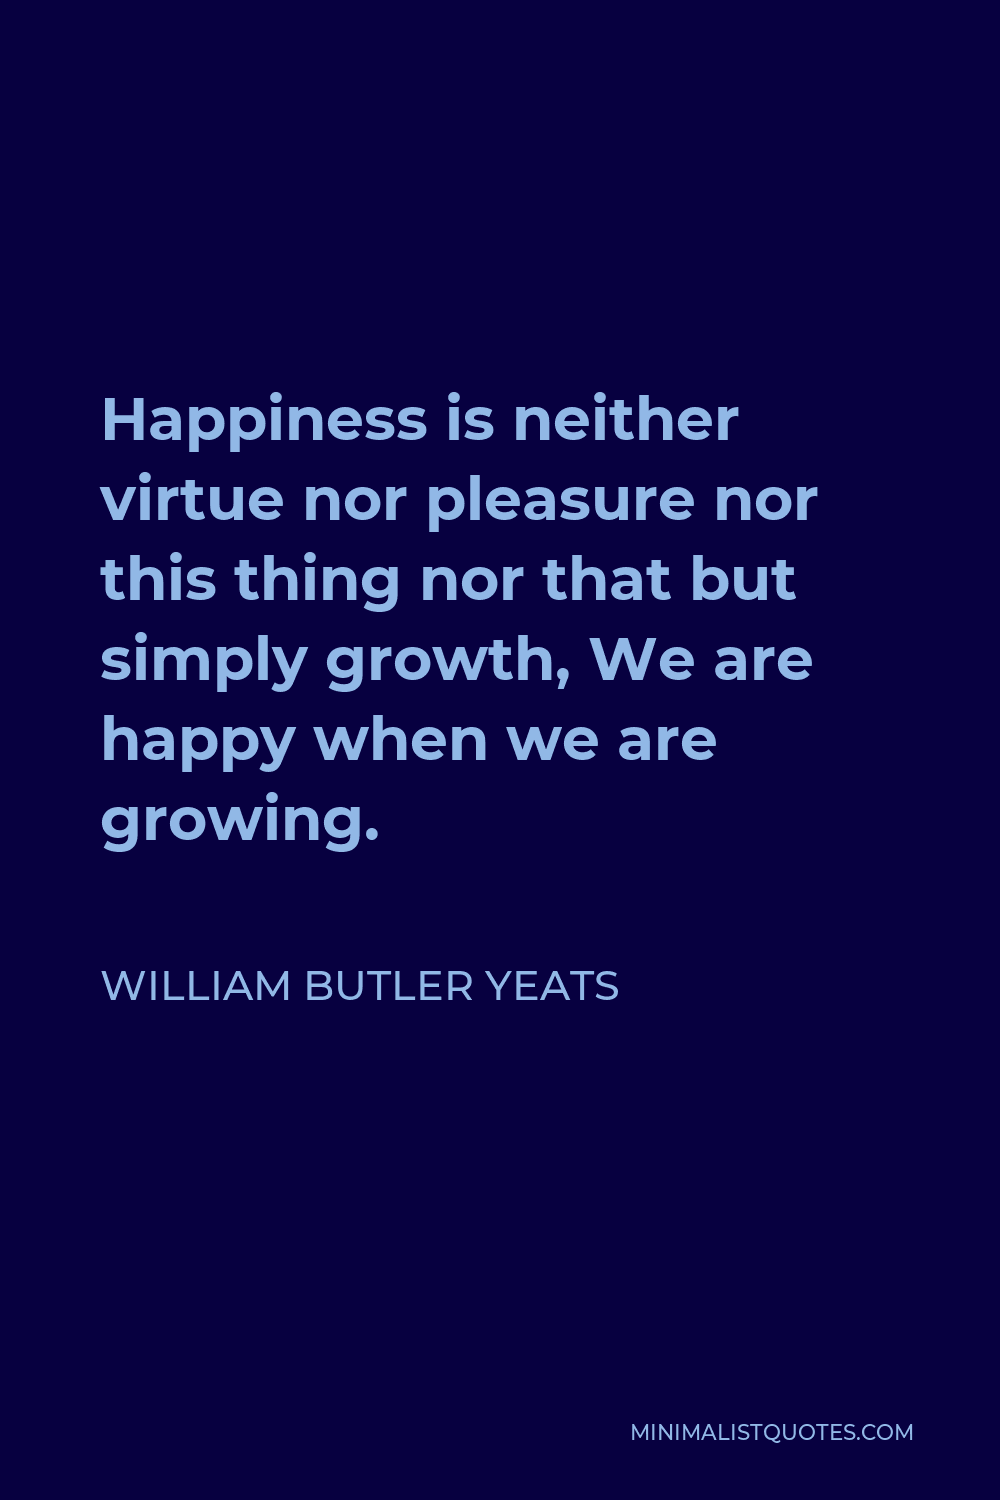 William Butler Yeats Quote - Happiness is neither virtue nor pleasure nor this thing nor that but simply growth, We are happy when we are growing.